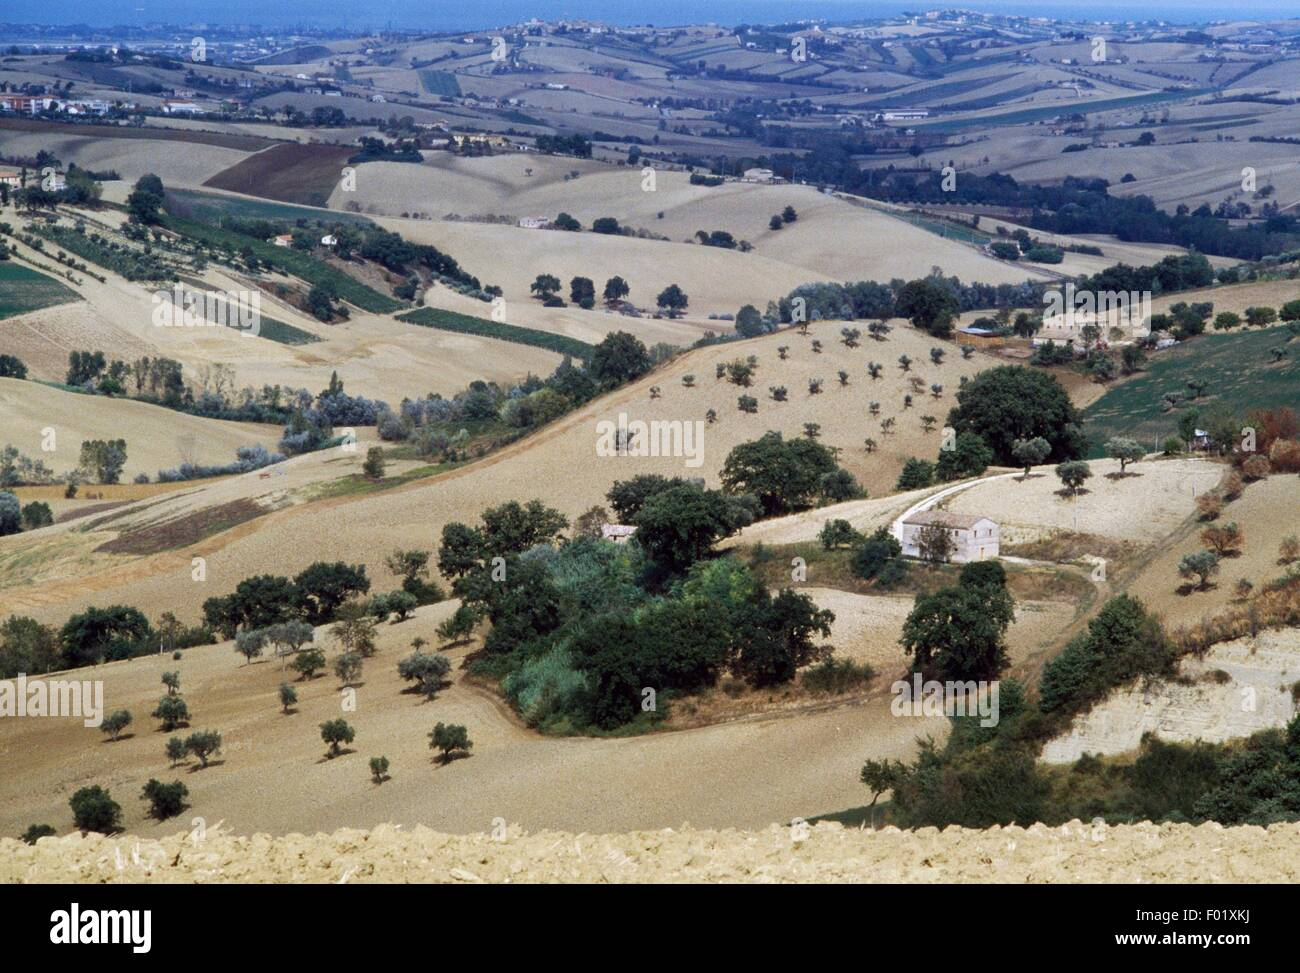 Cultivated land in the Jesi area, Marche, Italy. - Stock Image